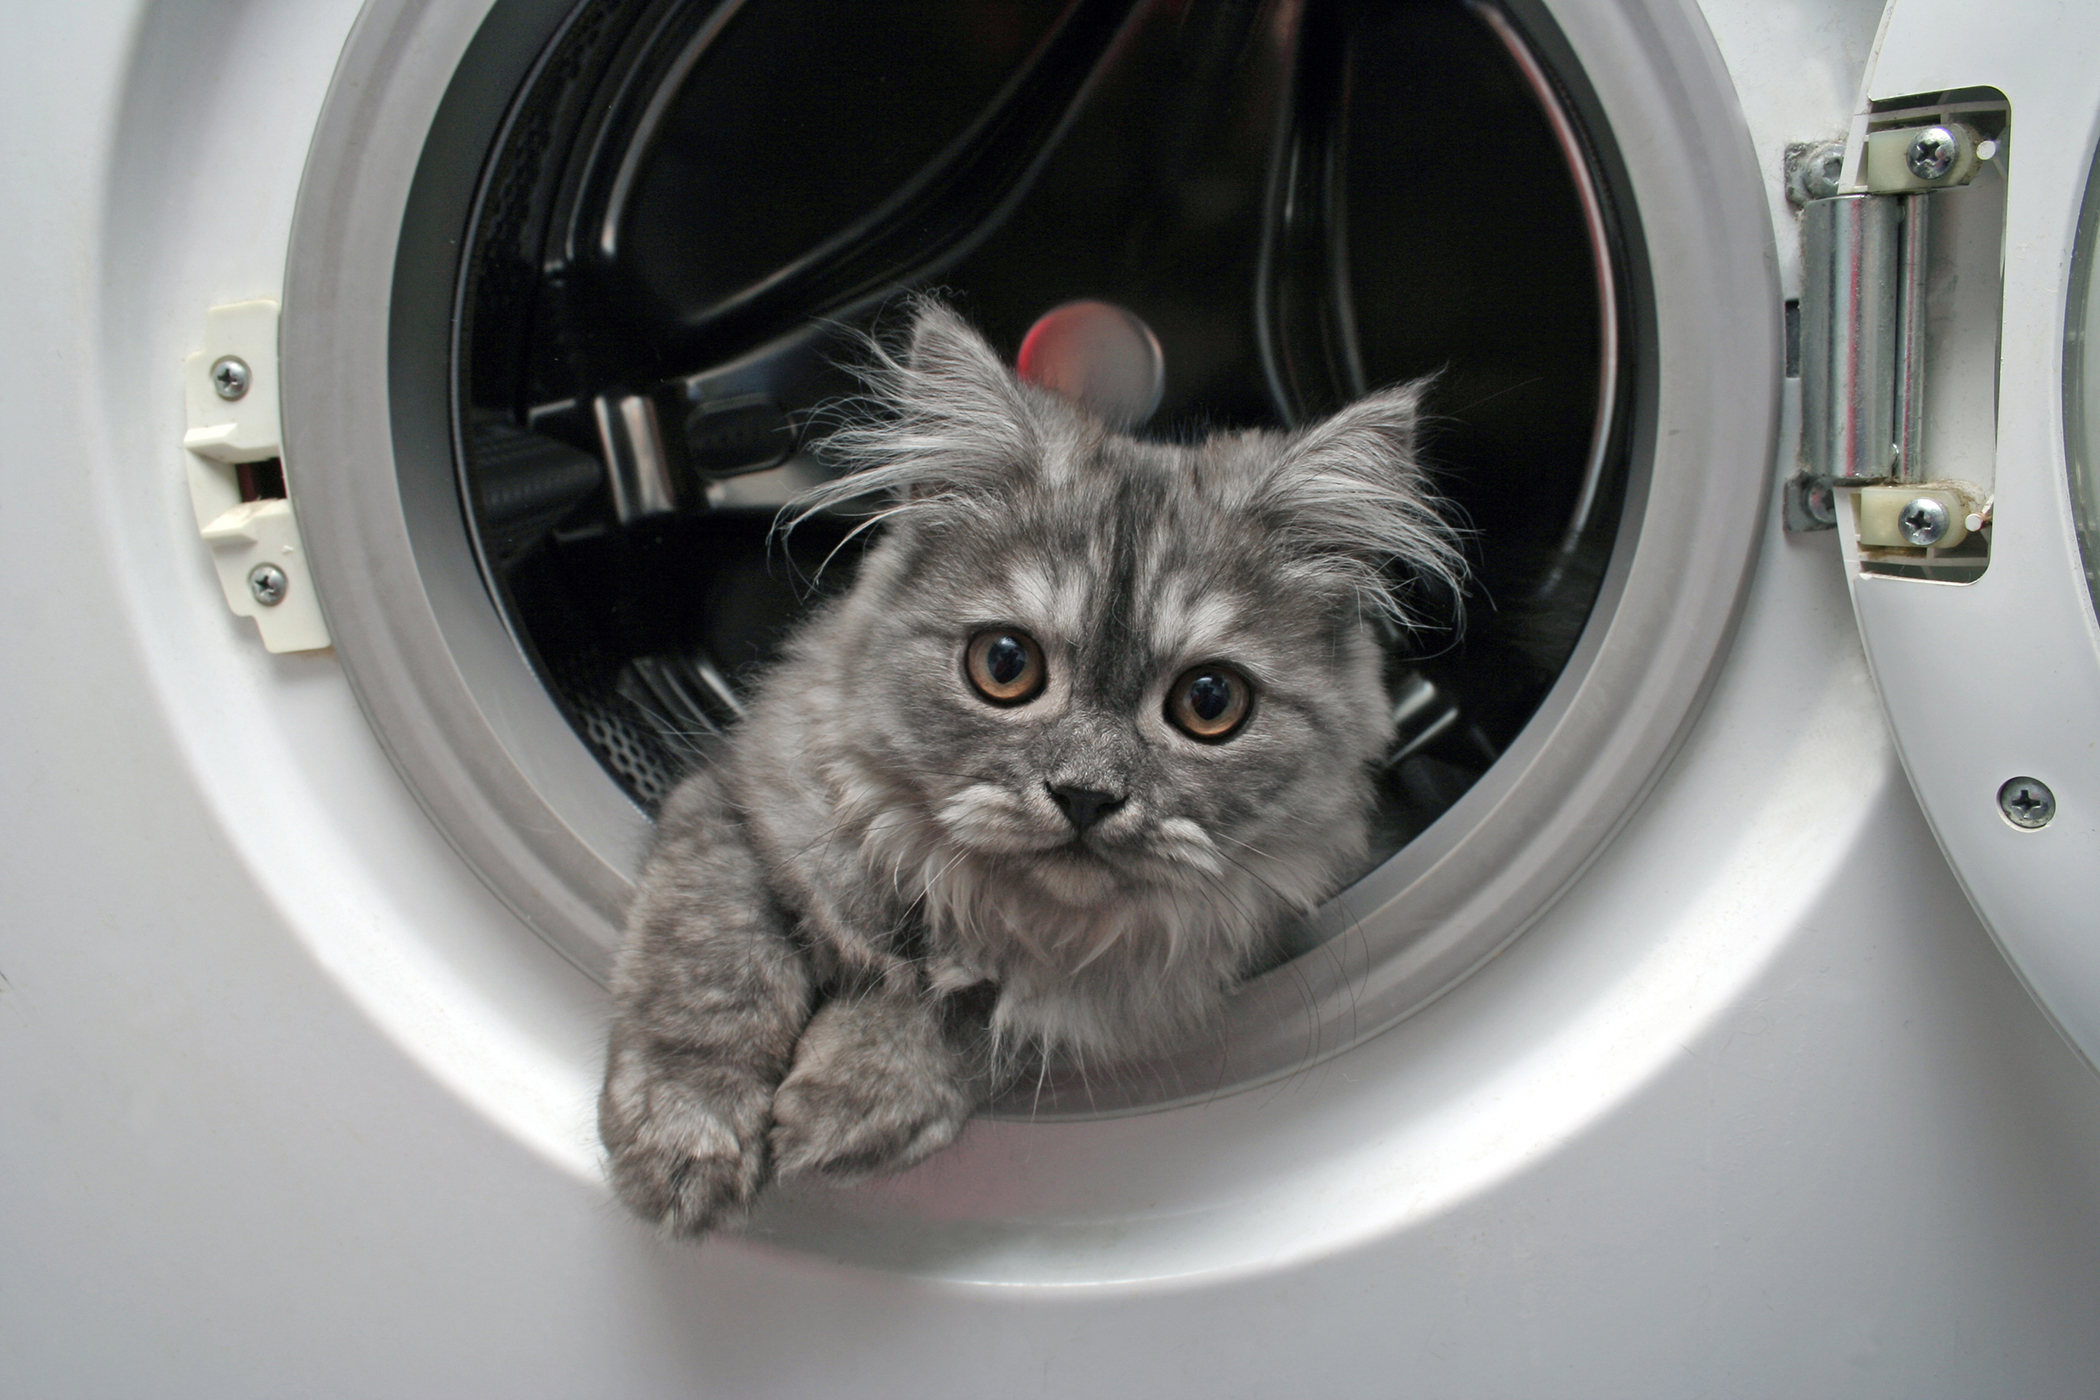 Laundry Detergent Allergy in Cats